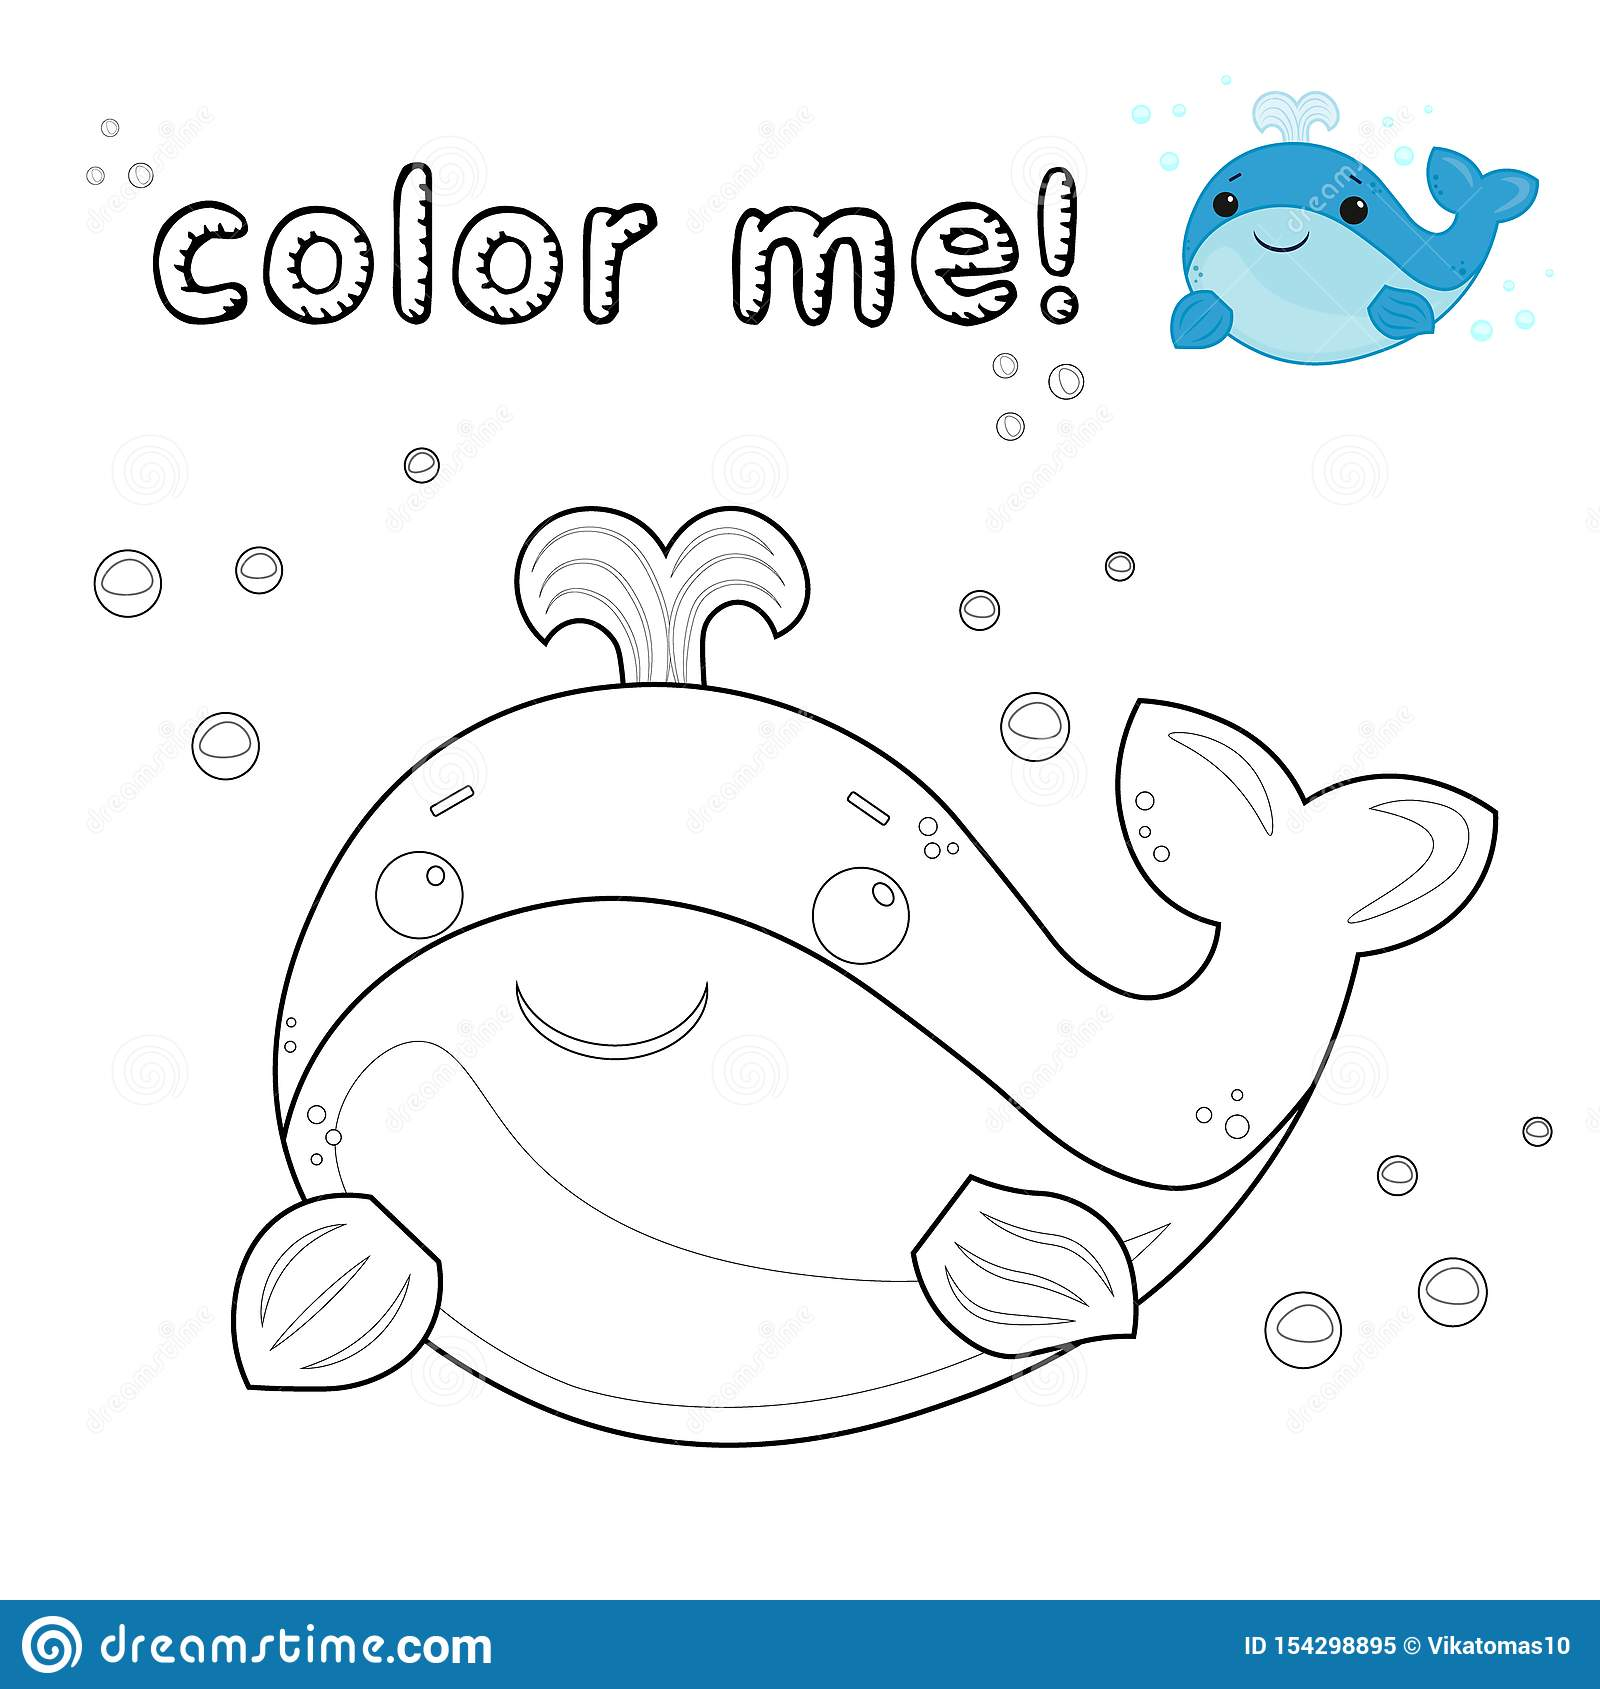 Free Printable Whale Coloring Pages For Kids | Whale coloring ... | 1689x1600